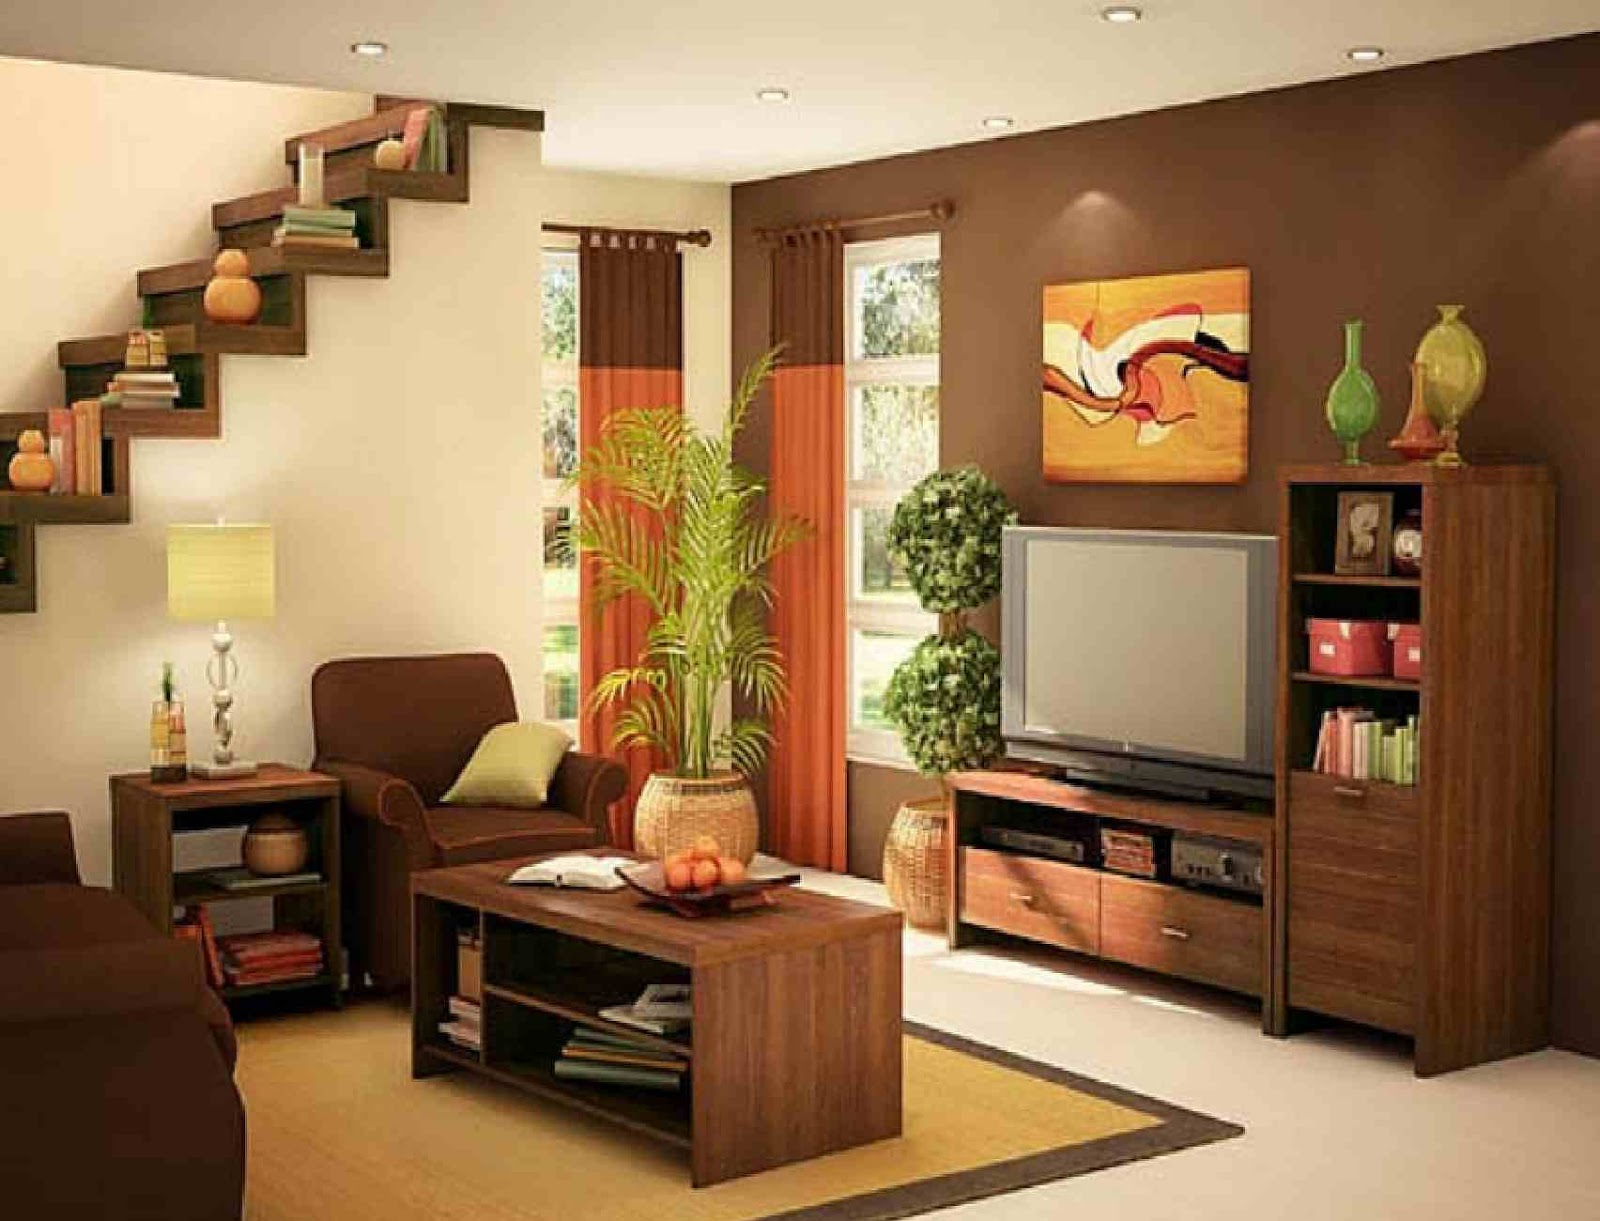 Home interior designs simple living room designs for Simple house interior design